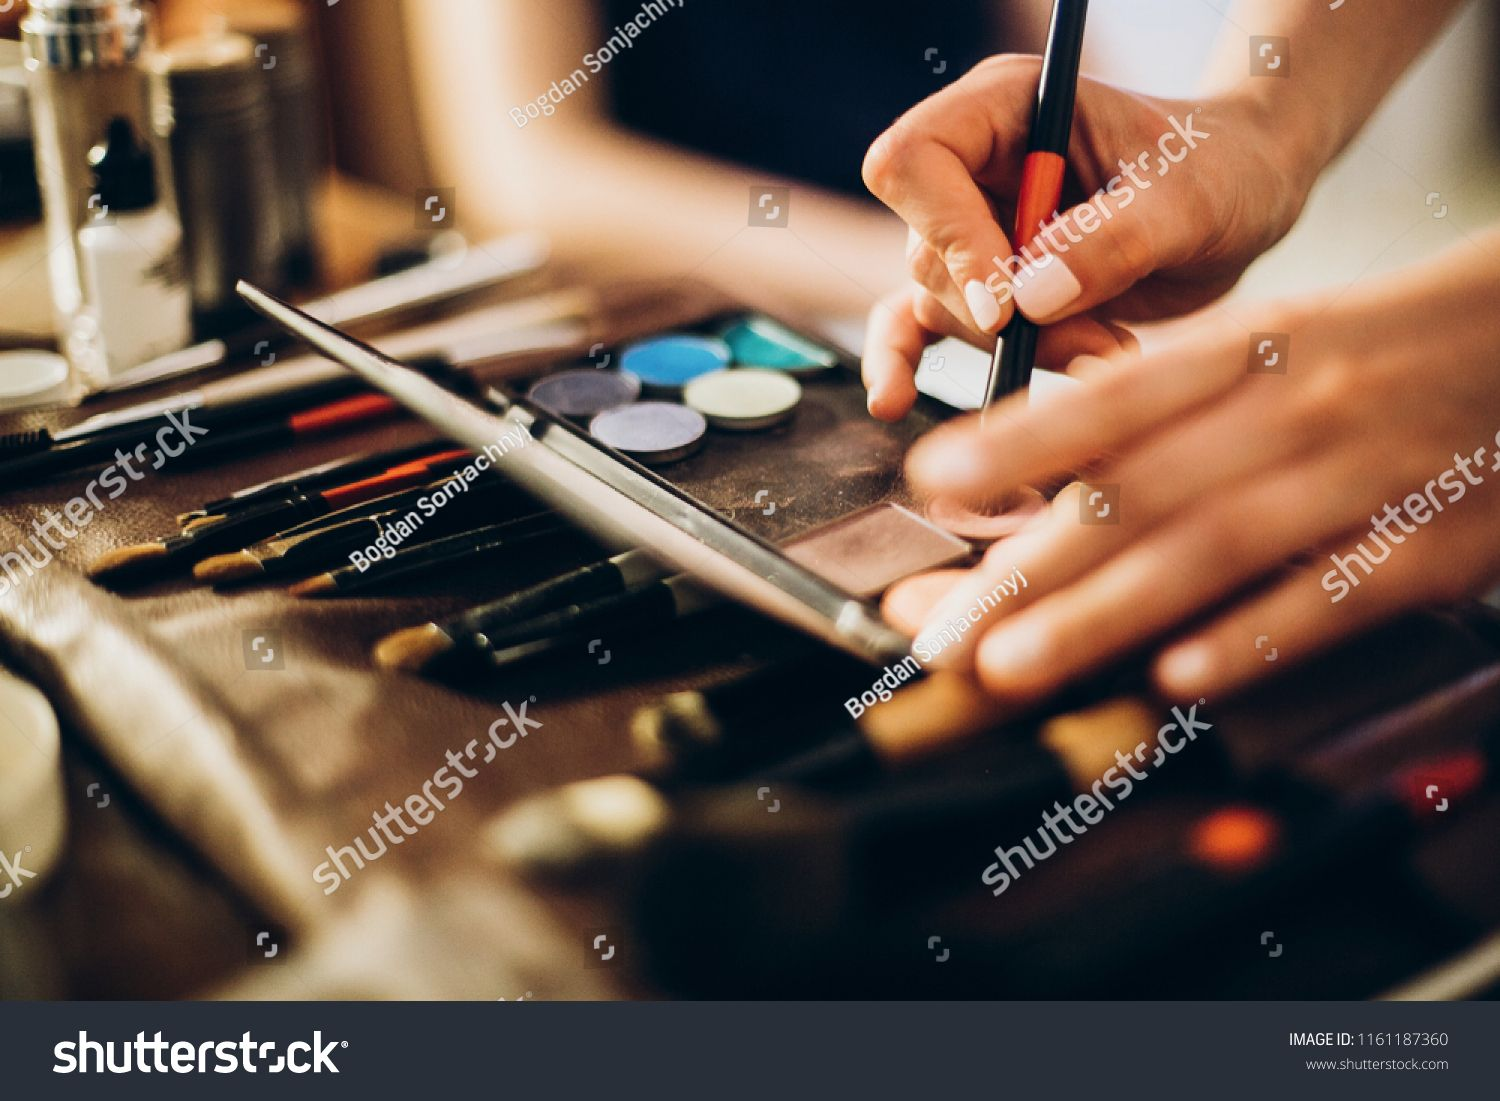 hands holding brush and eyeshadow palette. makeup artist